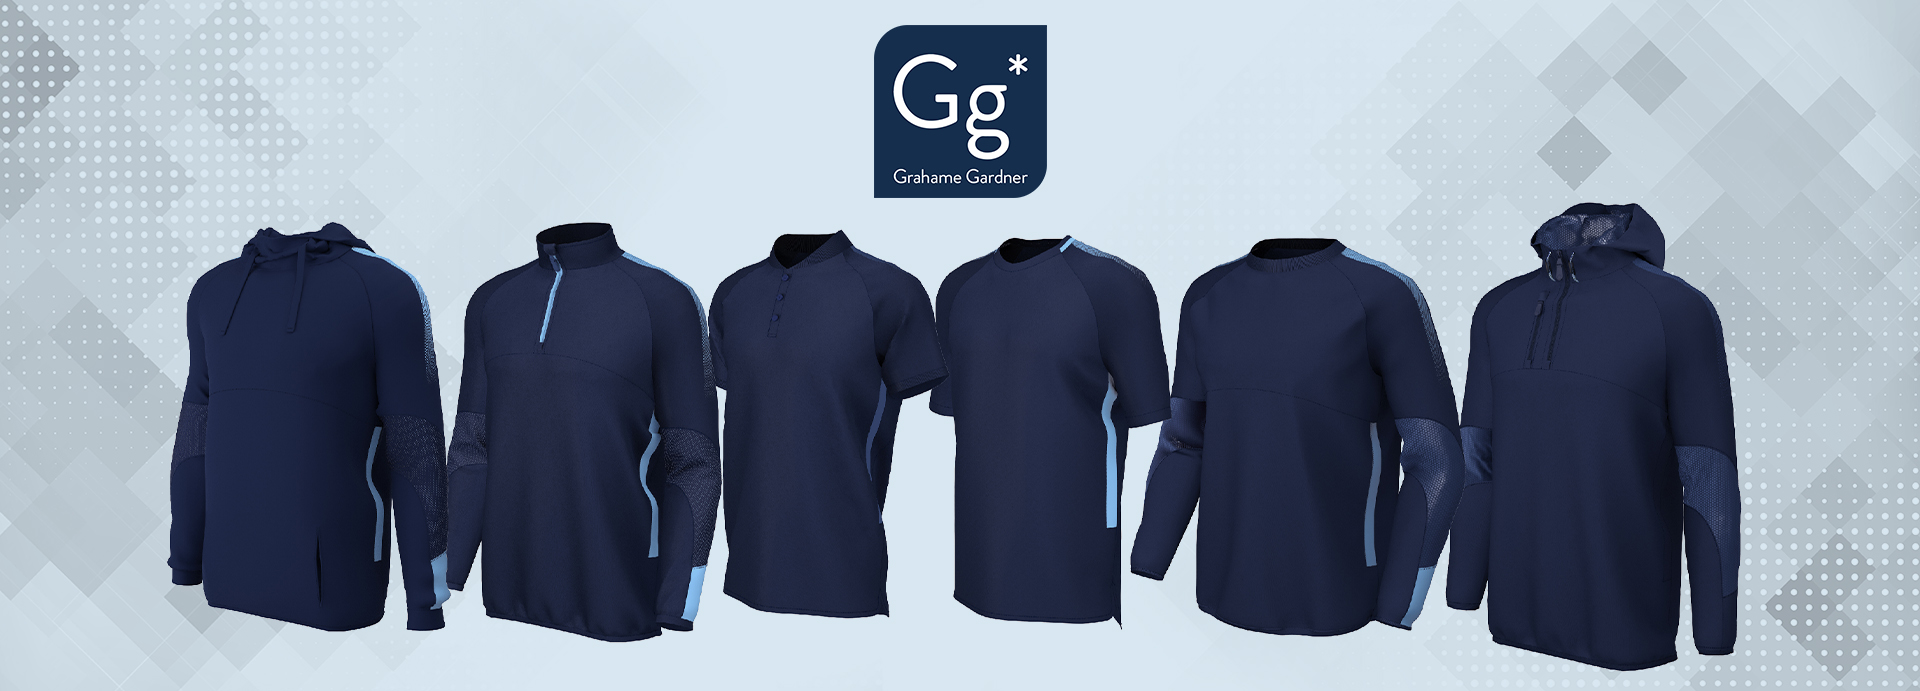 GG - Advance Tunic Range - Desktop